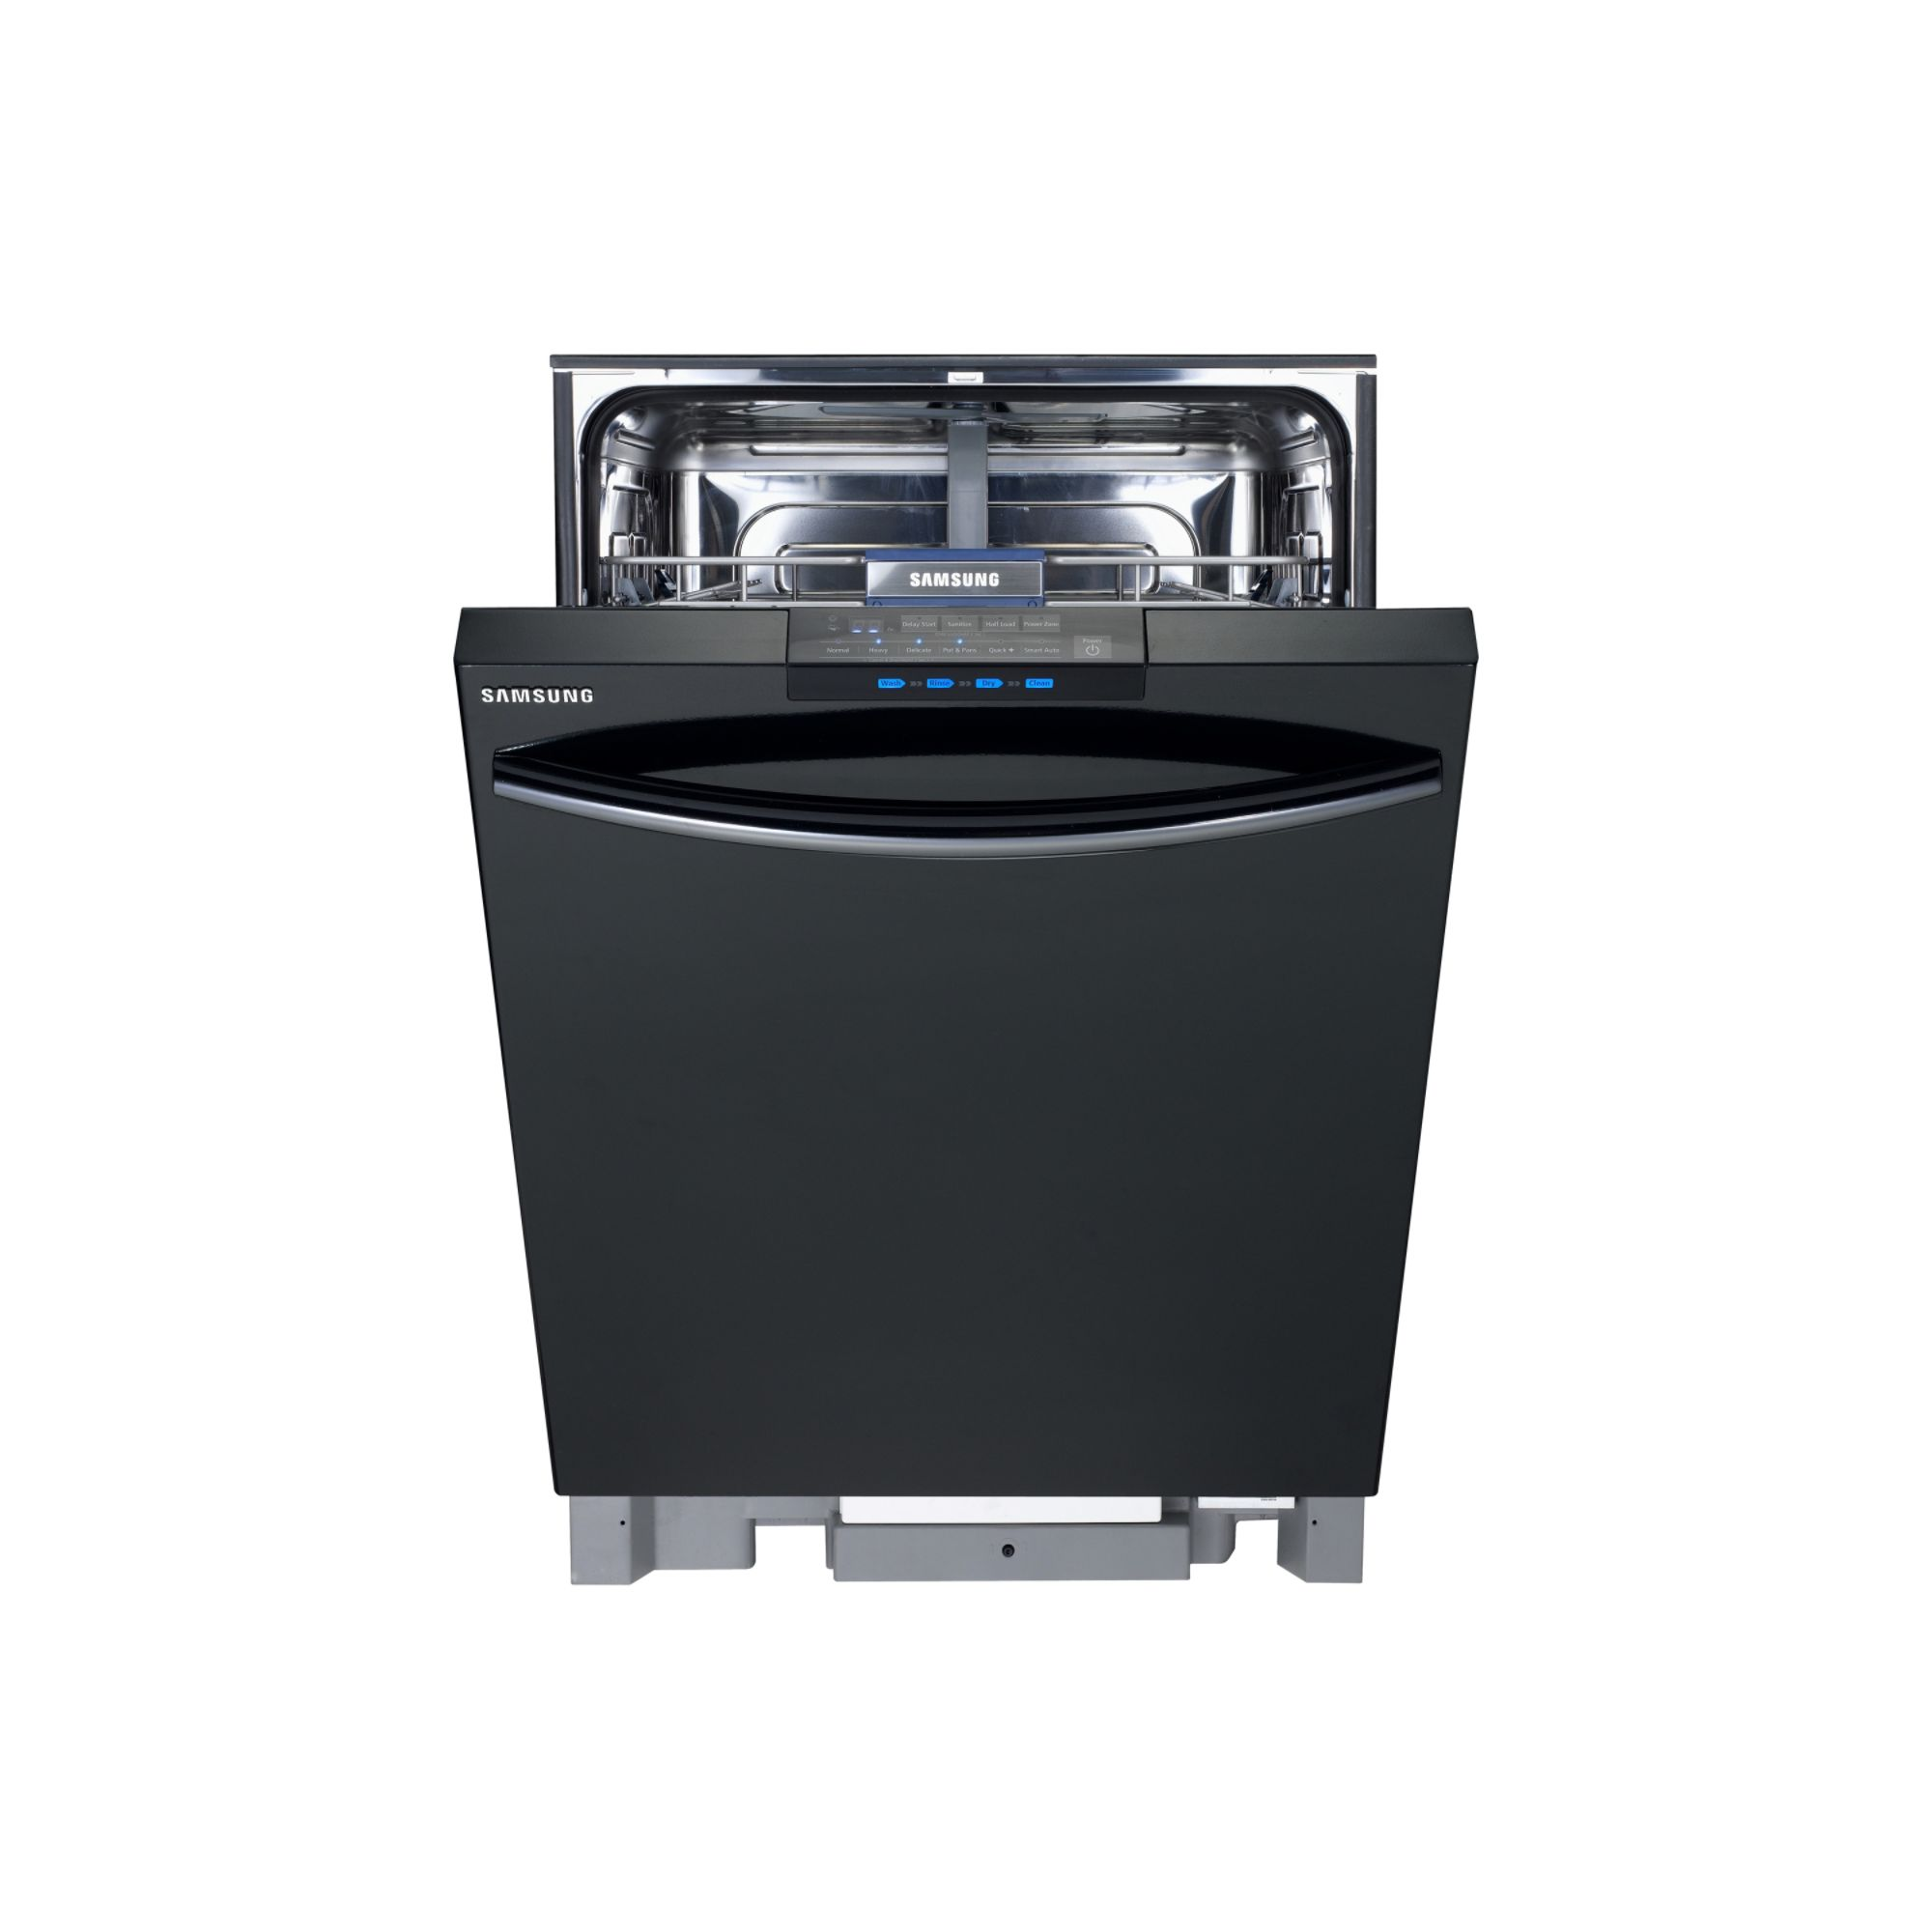 "Samsung 24"" Built-In Dishwasher - DMT800RH"